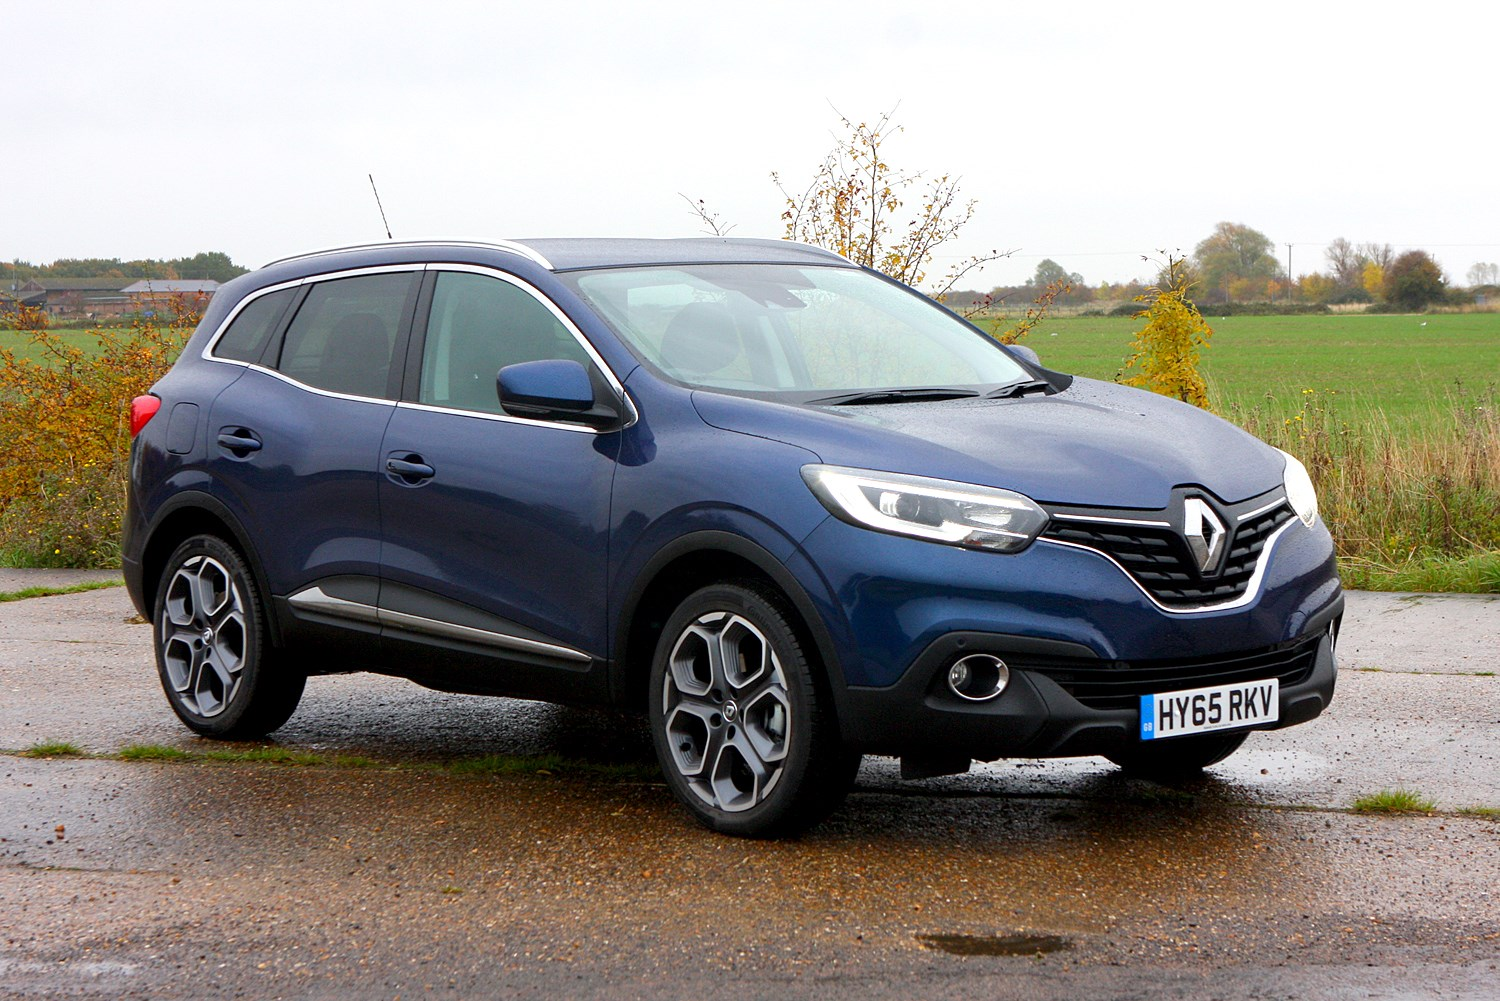 renault kadjar review running costs parkers. Black Bedroom Furniture Sets. Home Design Ideas